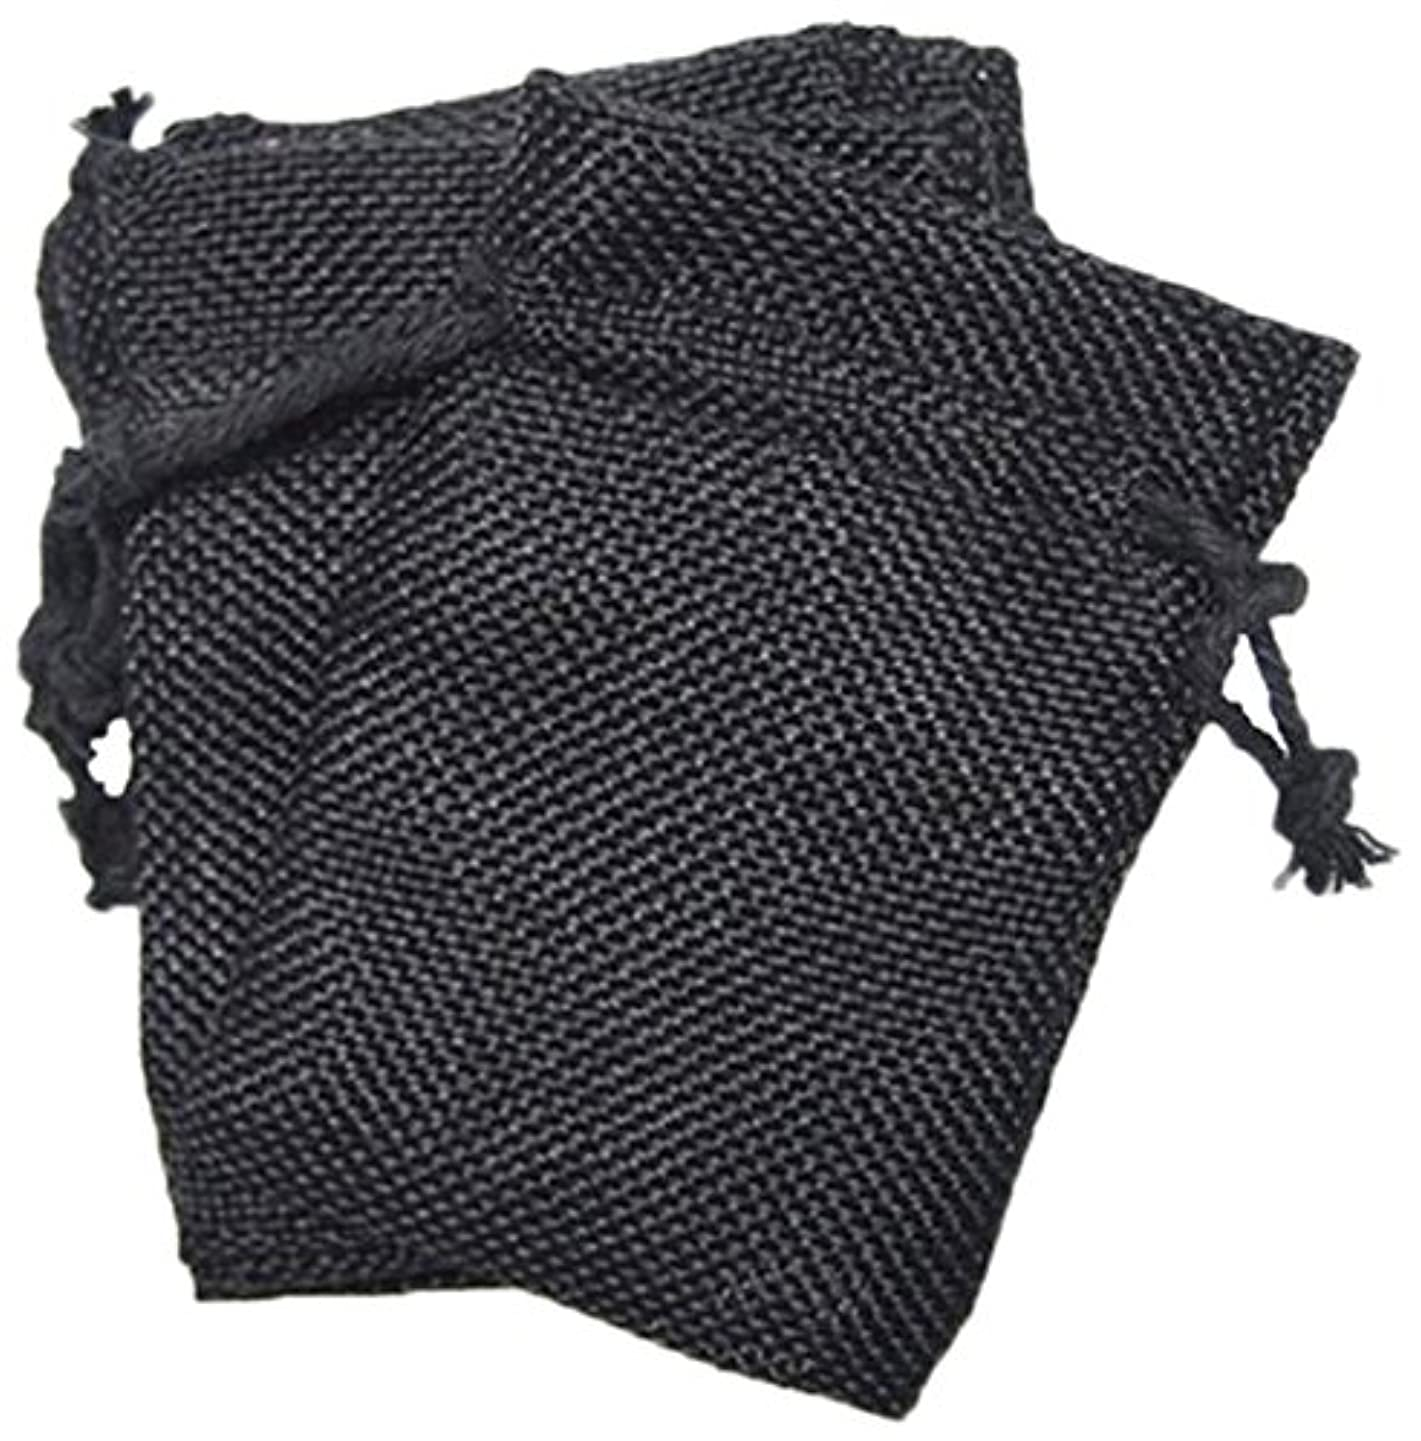 Firefly Imports Homeford Faux Burlap Pouches with Cotton Drawstrings, Black, 6 by 9-Inch